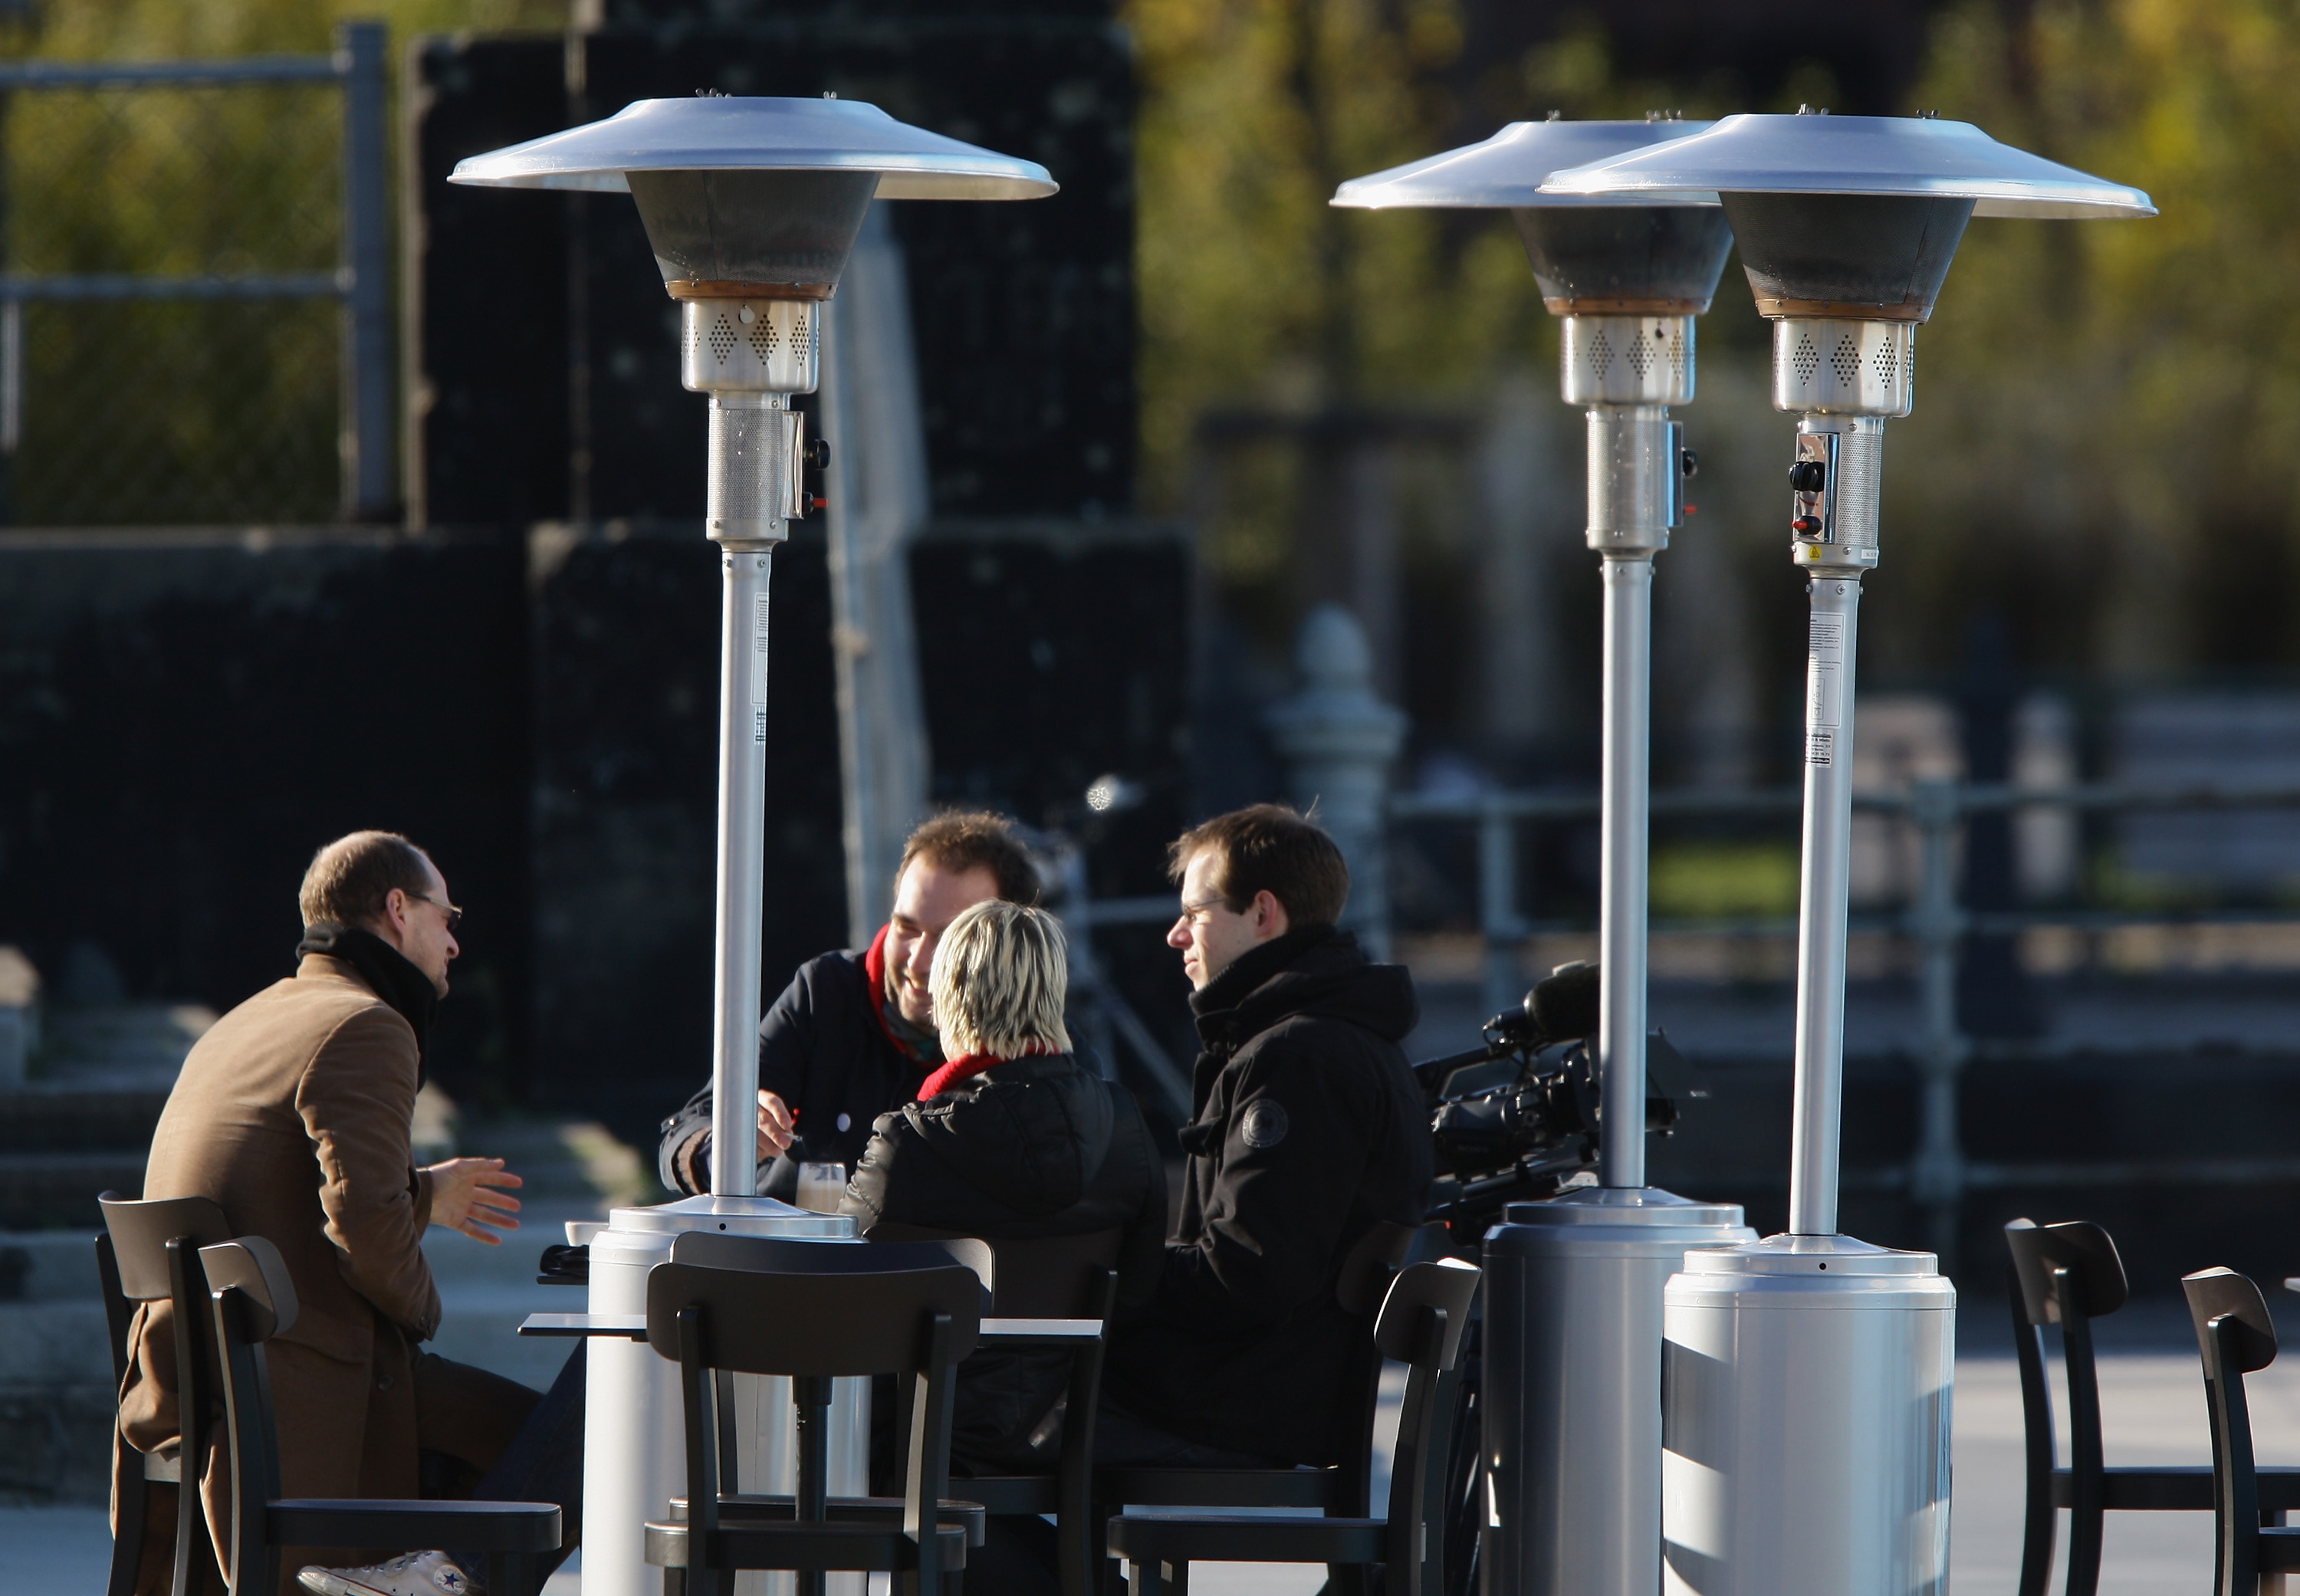 Berlin Districts Agree To Ban Patio Heaters